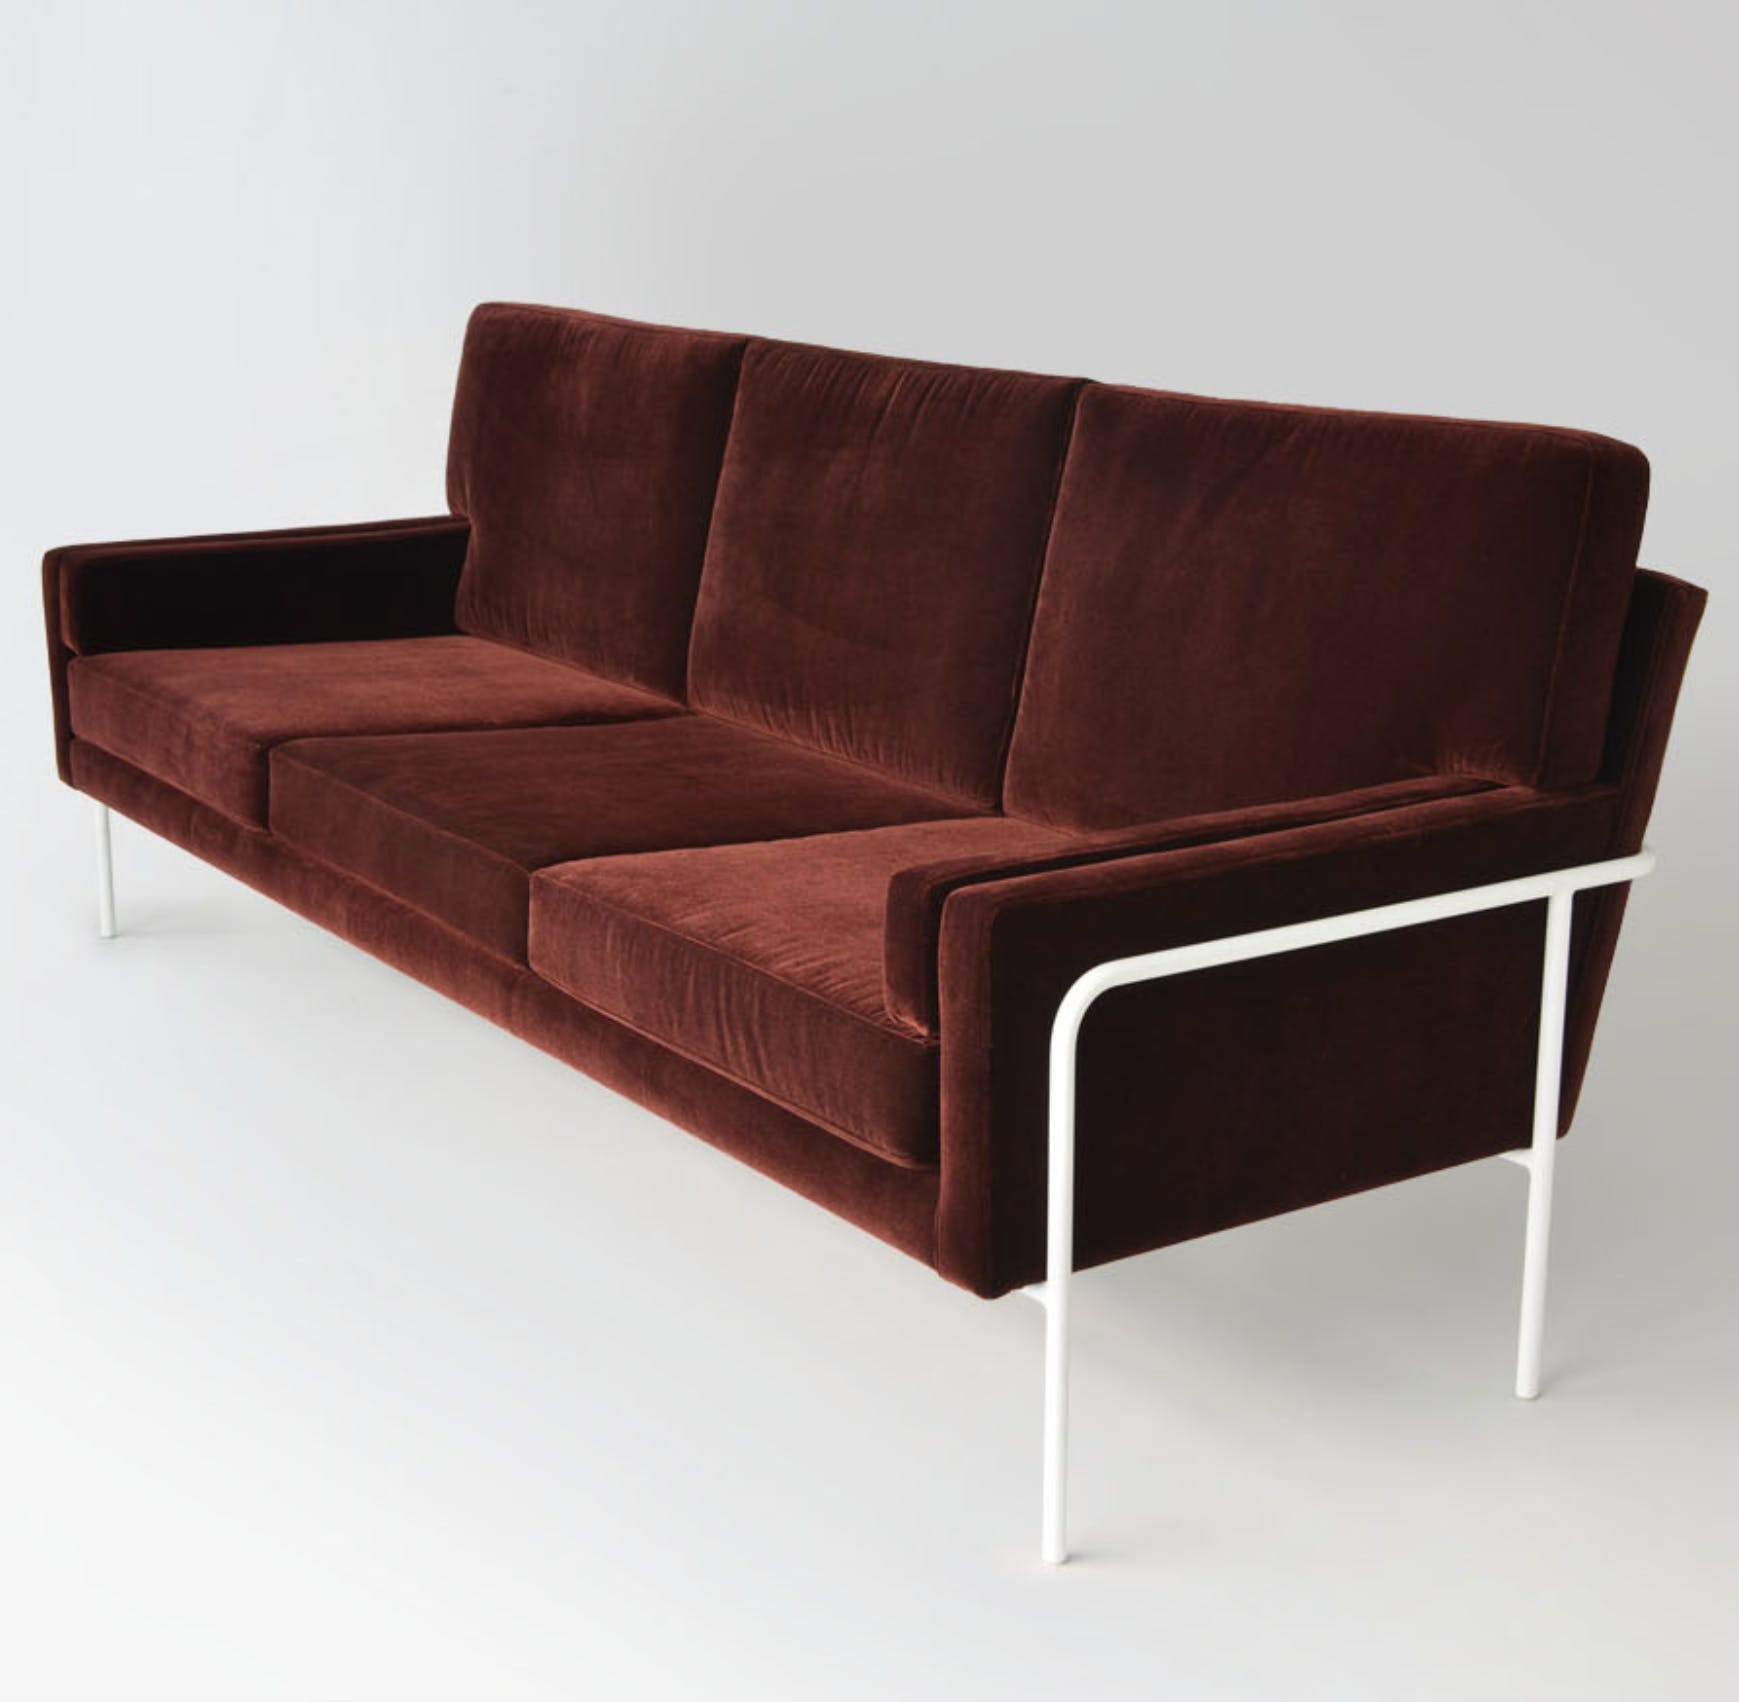 Phase Design Trolley Sofa Red Angle Haute Living 190108 185451